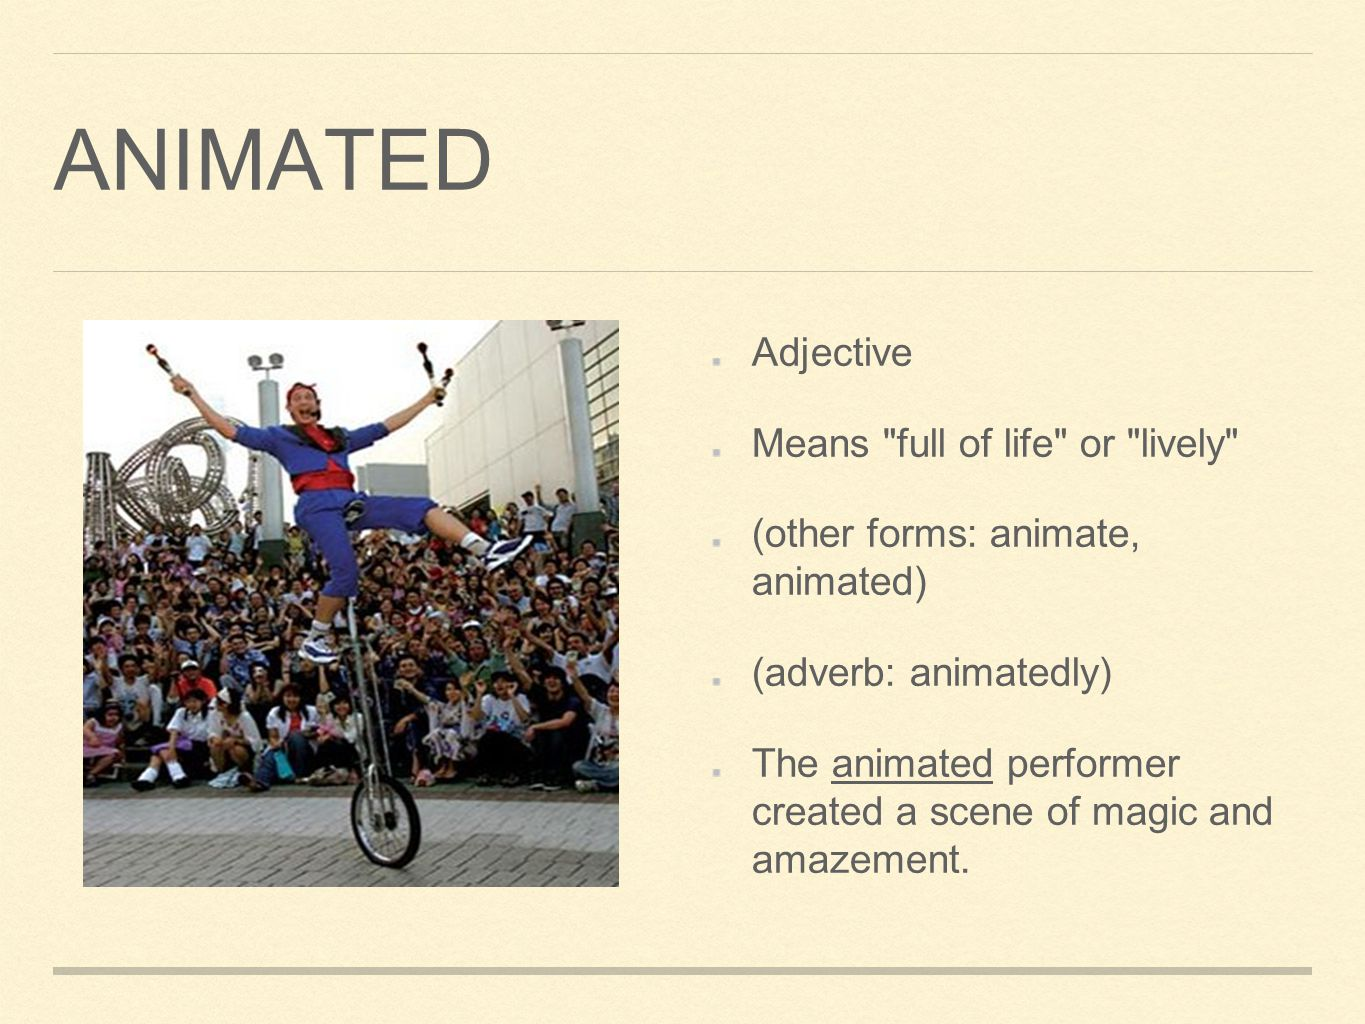 ANIMATED Adjective Means full of life or lively (other forms: animate, animated) (adverb: animatedly) The animated performer created a scene of magic and amazement.